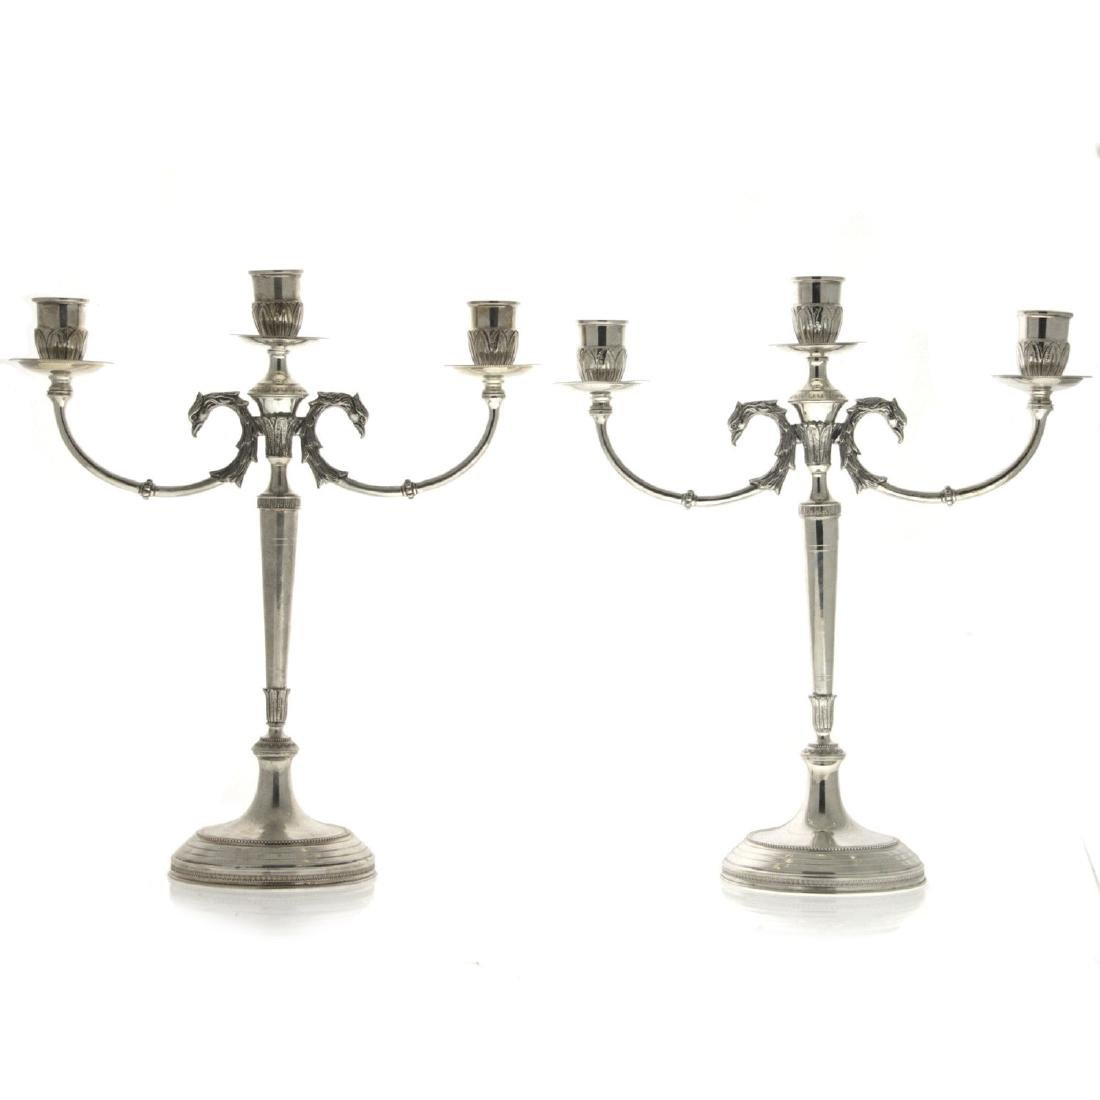 Pair of Silver Candelabras, Italy, 20th Century.